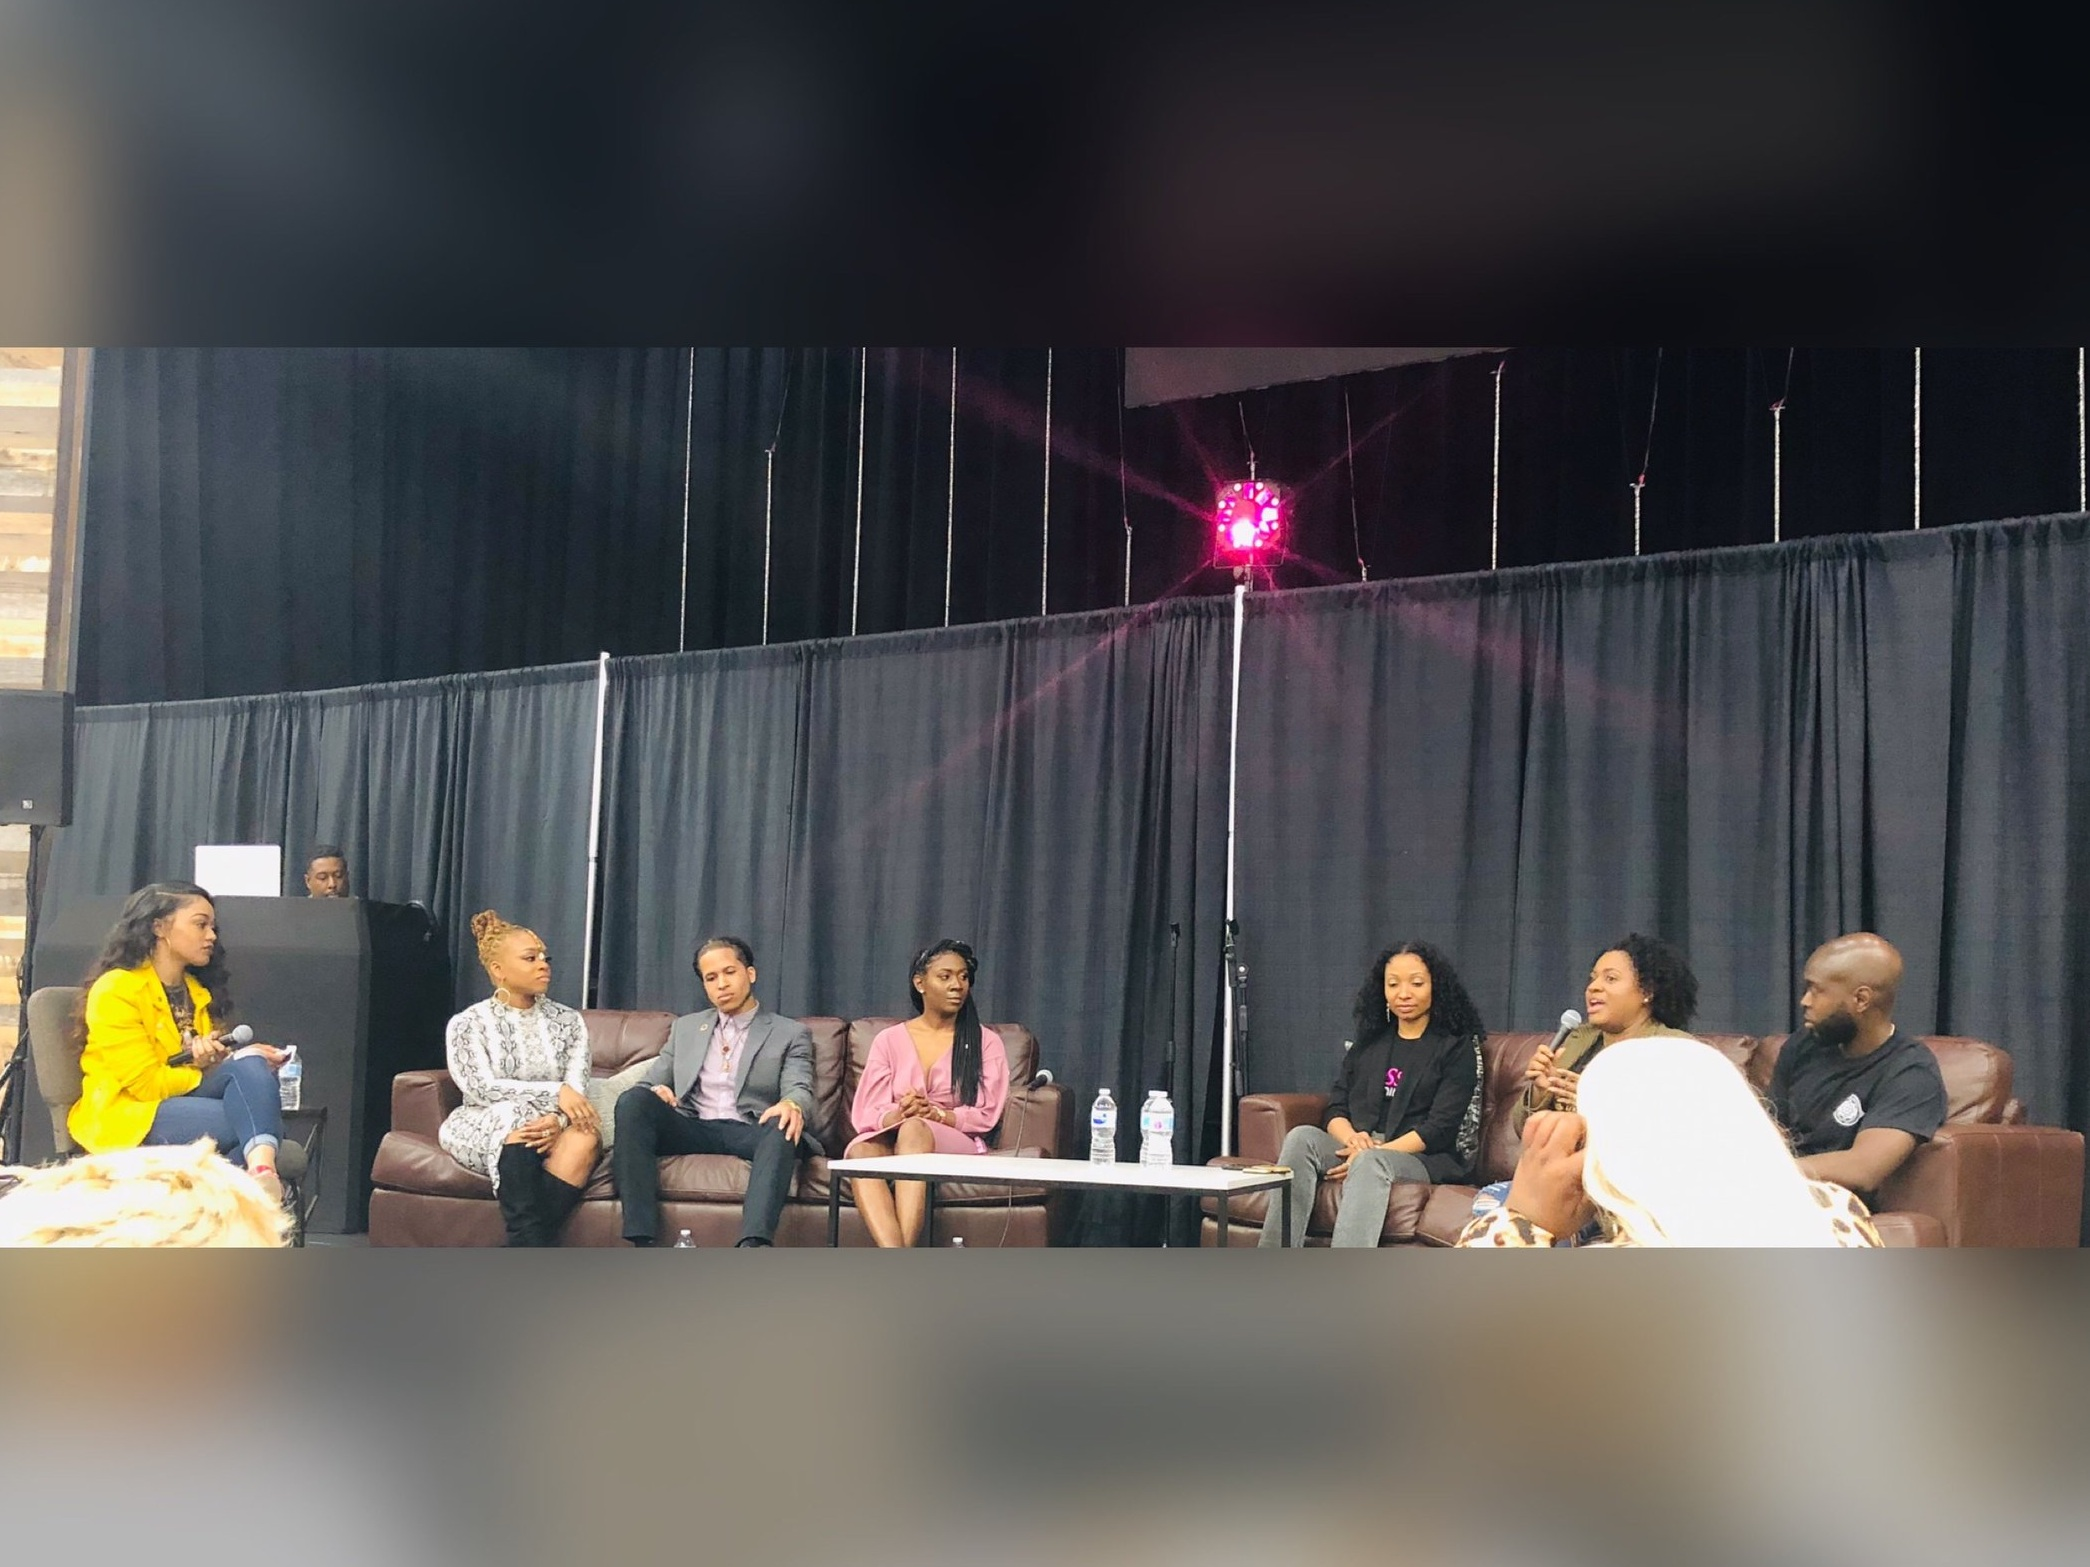 - Meet our first group of Panelists! (L to R) Montie Green, owner of Velvet Wax and Beauty, talked about her journey as a business owner. Check out her services on IG @velvetwaxandbeauty! Meet Cameron, the CEO of Violence Intervention & Prevention, who told his story of how a life changing shooting changed his life for the better. Check him out on IG @mindofabillion. Nia Wellman, who is the Founder of Campus Curlz and a YouTube Influencer, talked about her journey and branding. Find her on IG @niabiafoefia. Meet Jasmine of Kiss My Demin. Jasmine talked about the ups and downs of being a business owner. Her IG is @kissmydenim. Meet Jonna Scott-Blakes, Beauty Blogger, who turned her love for natural hair into a business. Check her out on IG @naturallyglam! Meet Rashod Harris, founder of The Rebel Societyxxv, who is a digital media strategist. Check out his work on IG @ShodHarris.